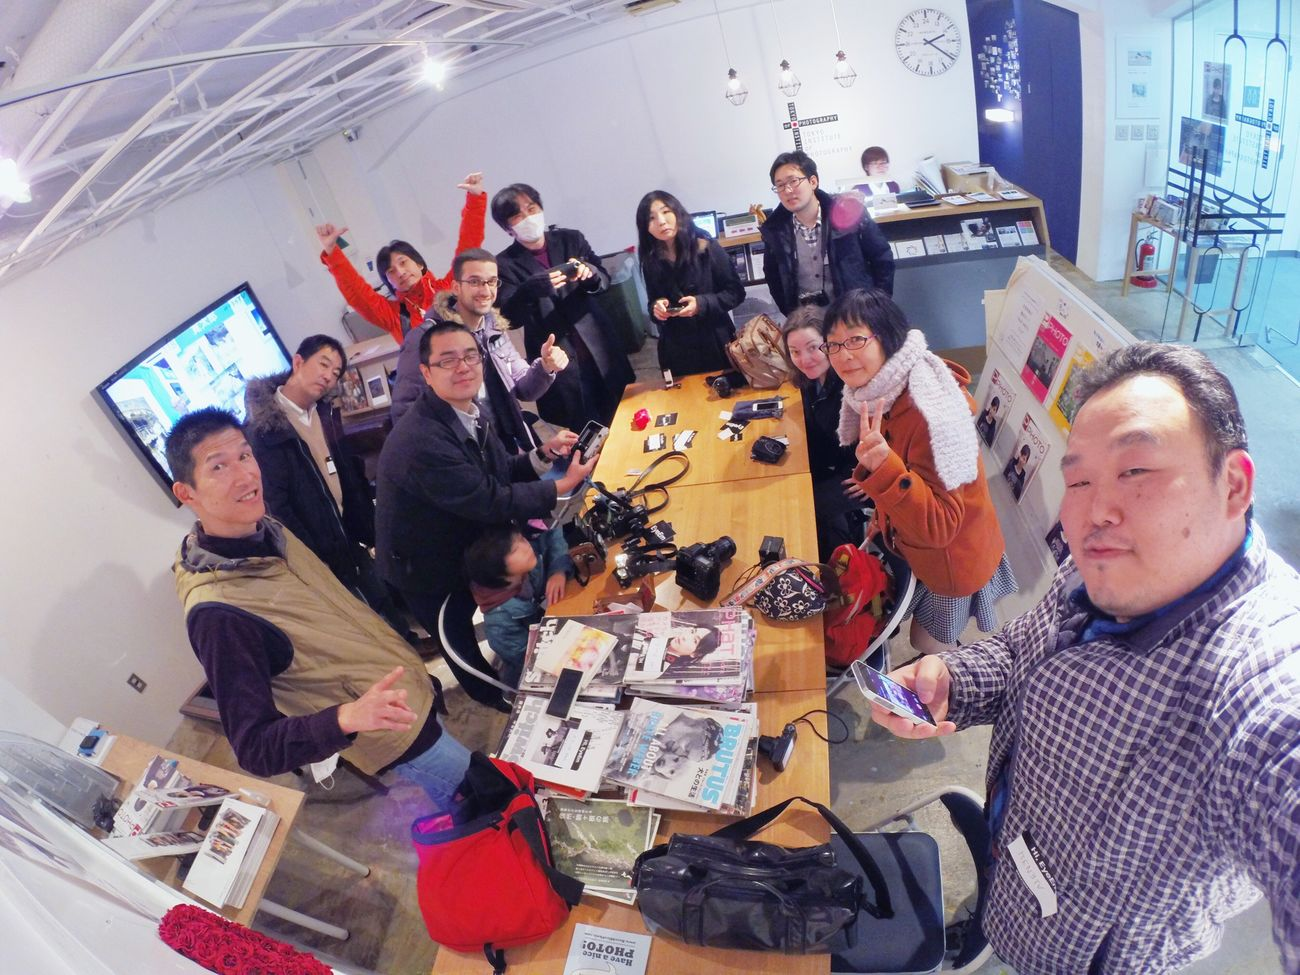 EyeEm Tokyo Meetup 6 happy Gopro GoPrography EyeEM Thanks To EyeEm Project 2014